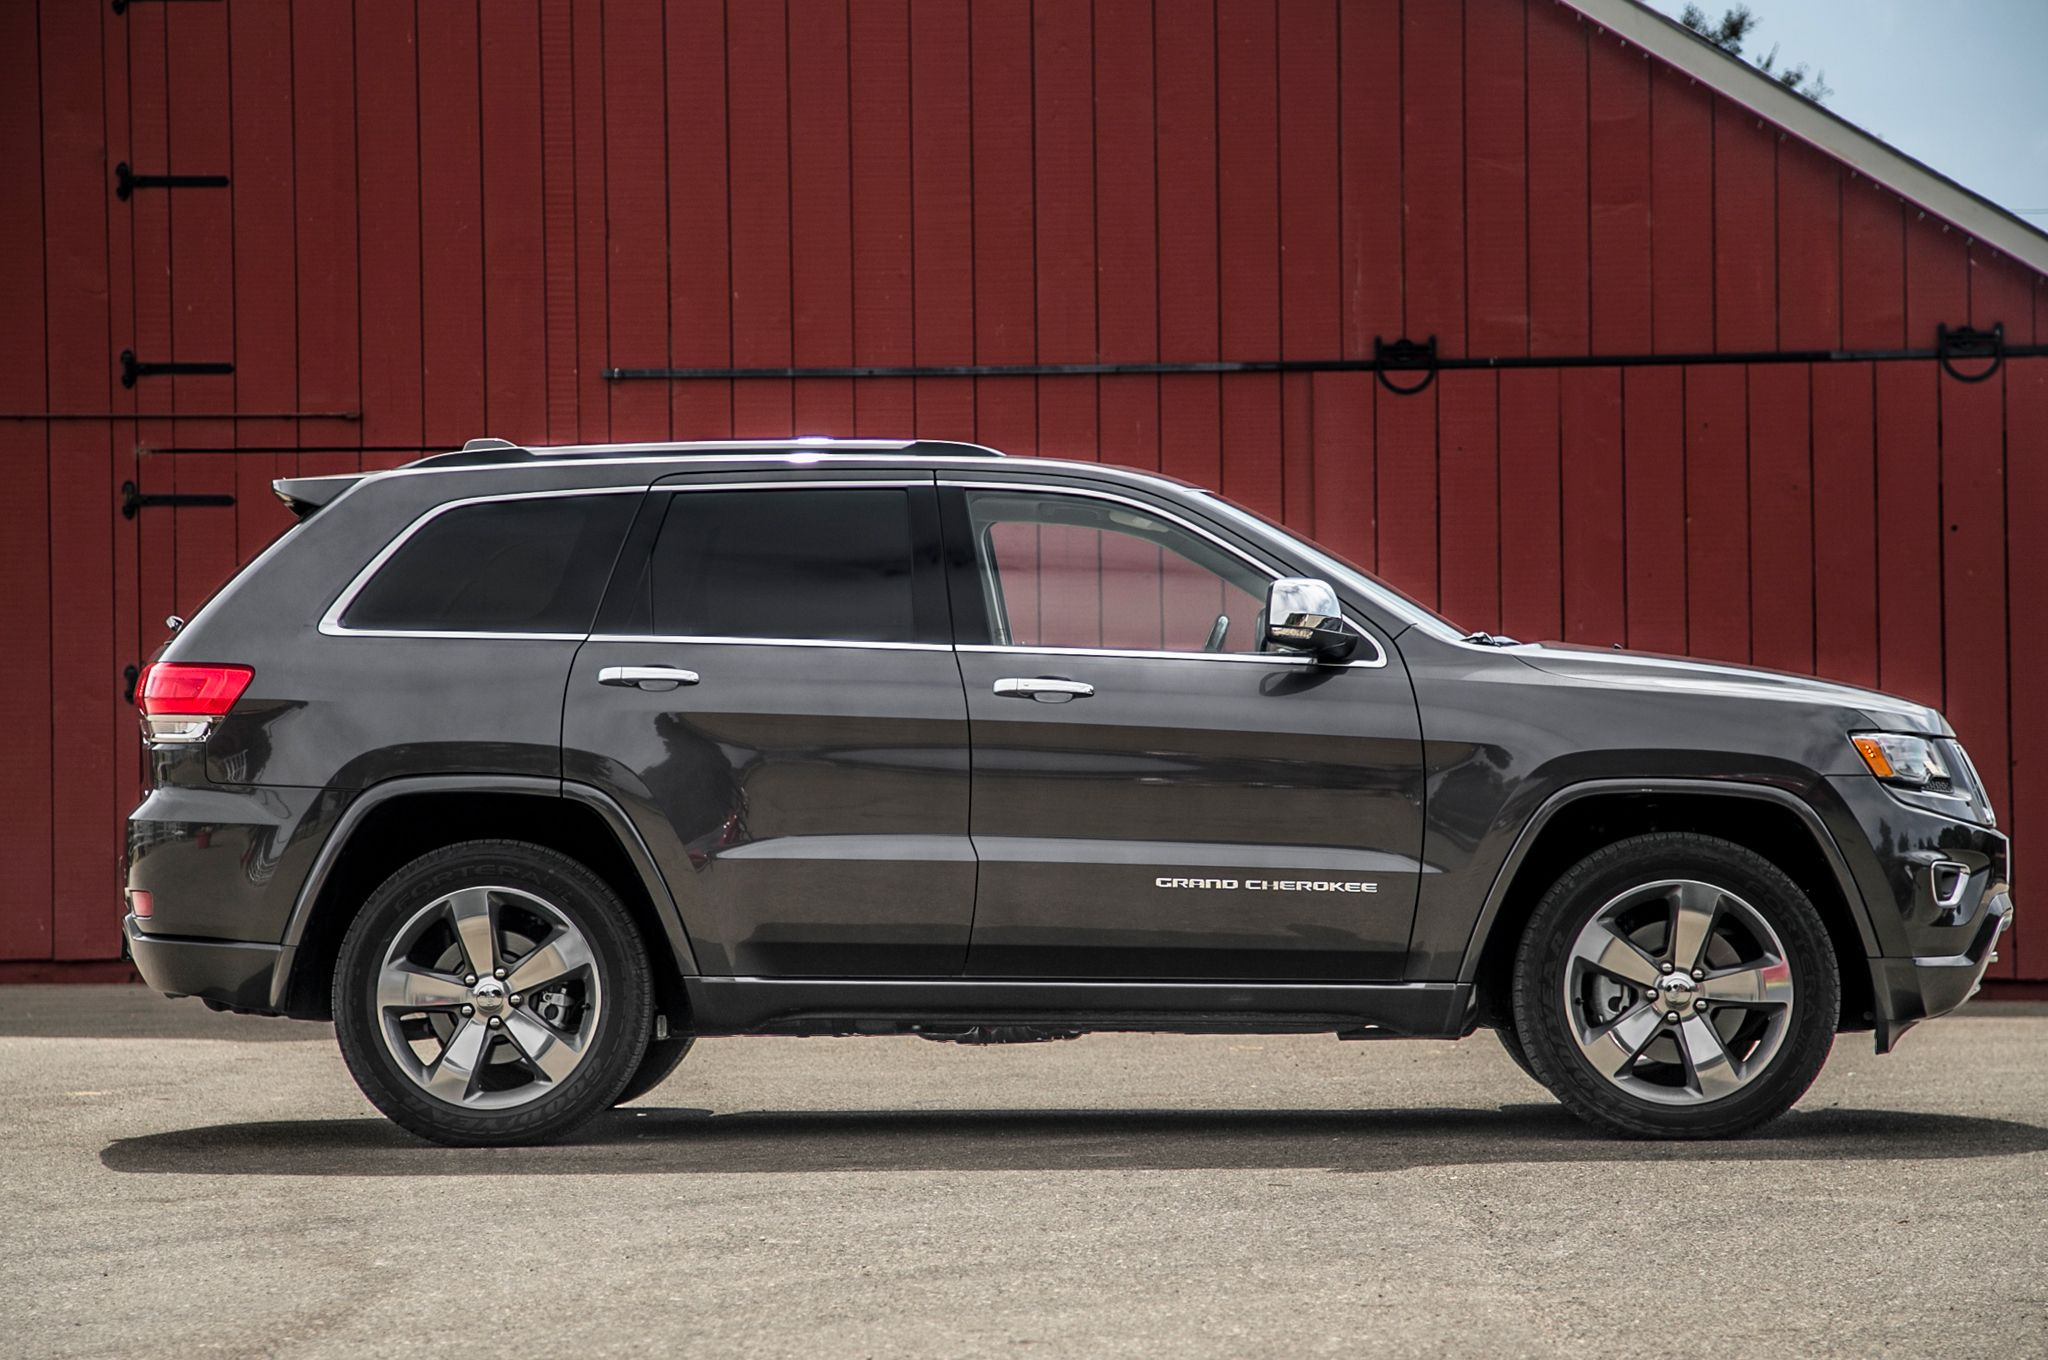 2015 jeep grand cherokee overland google search family car ideas pinterest grand. Black Bedroom Furniture Sets. Home Design Ideas